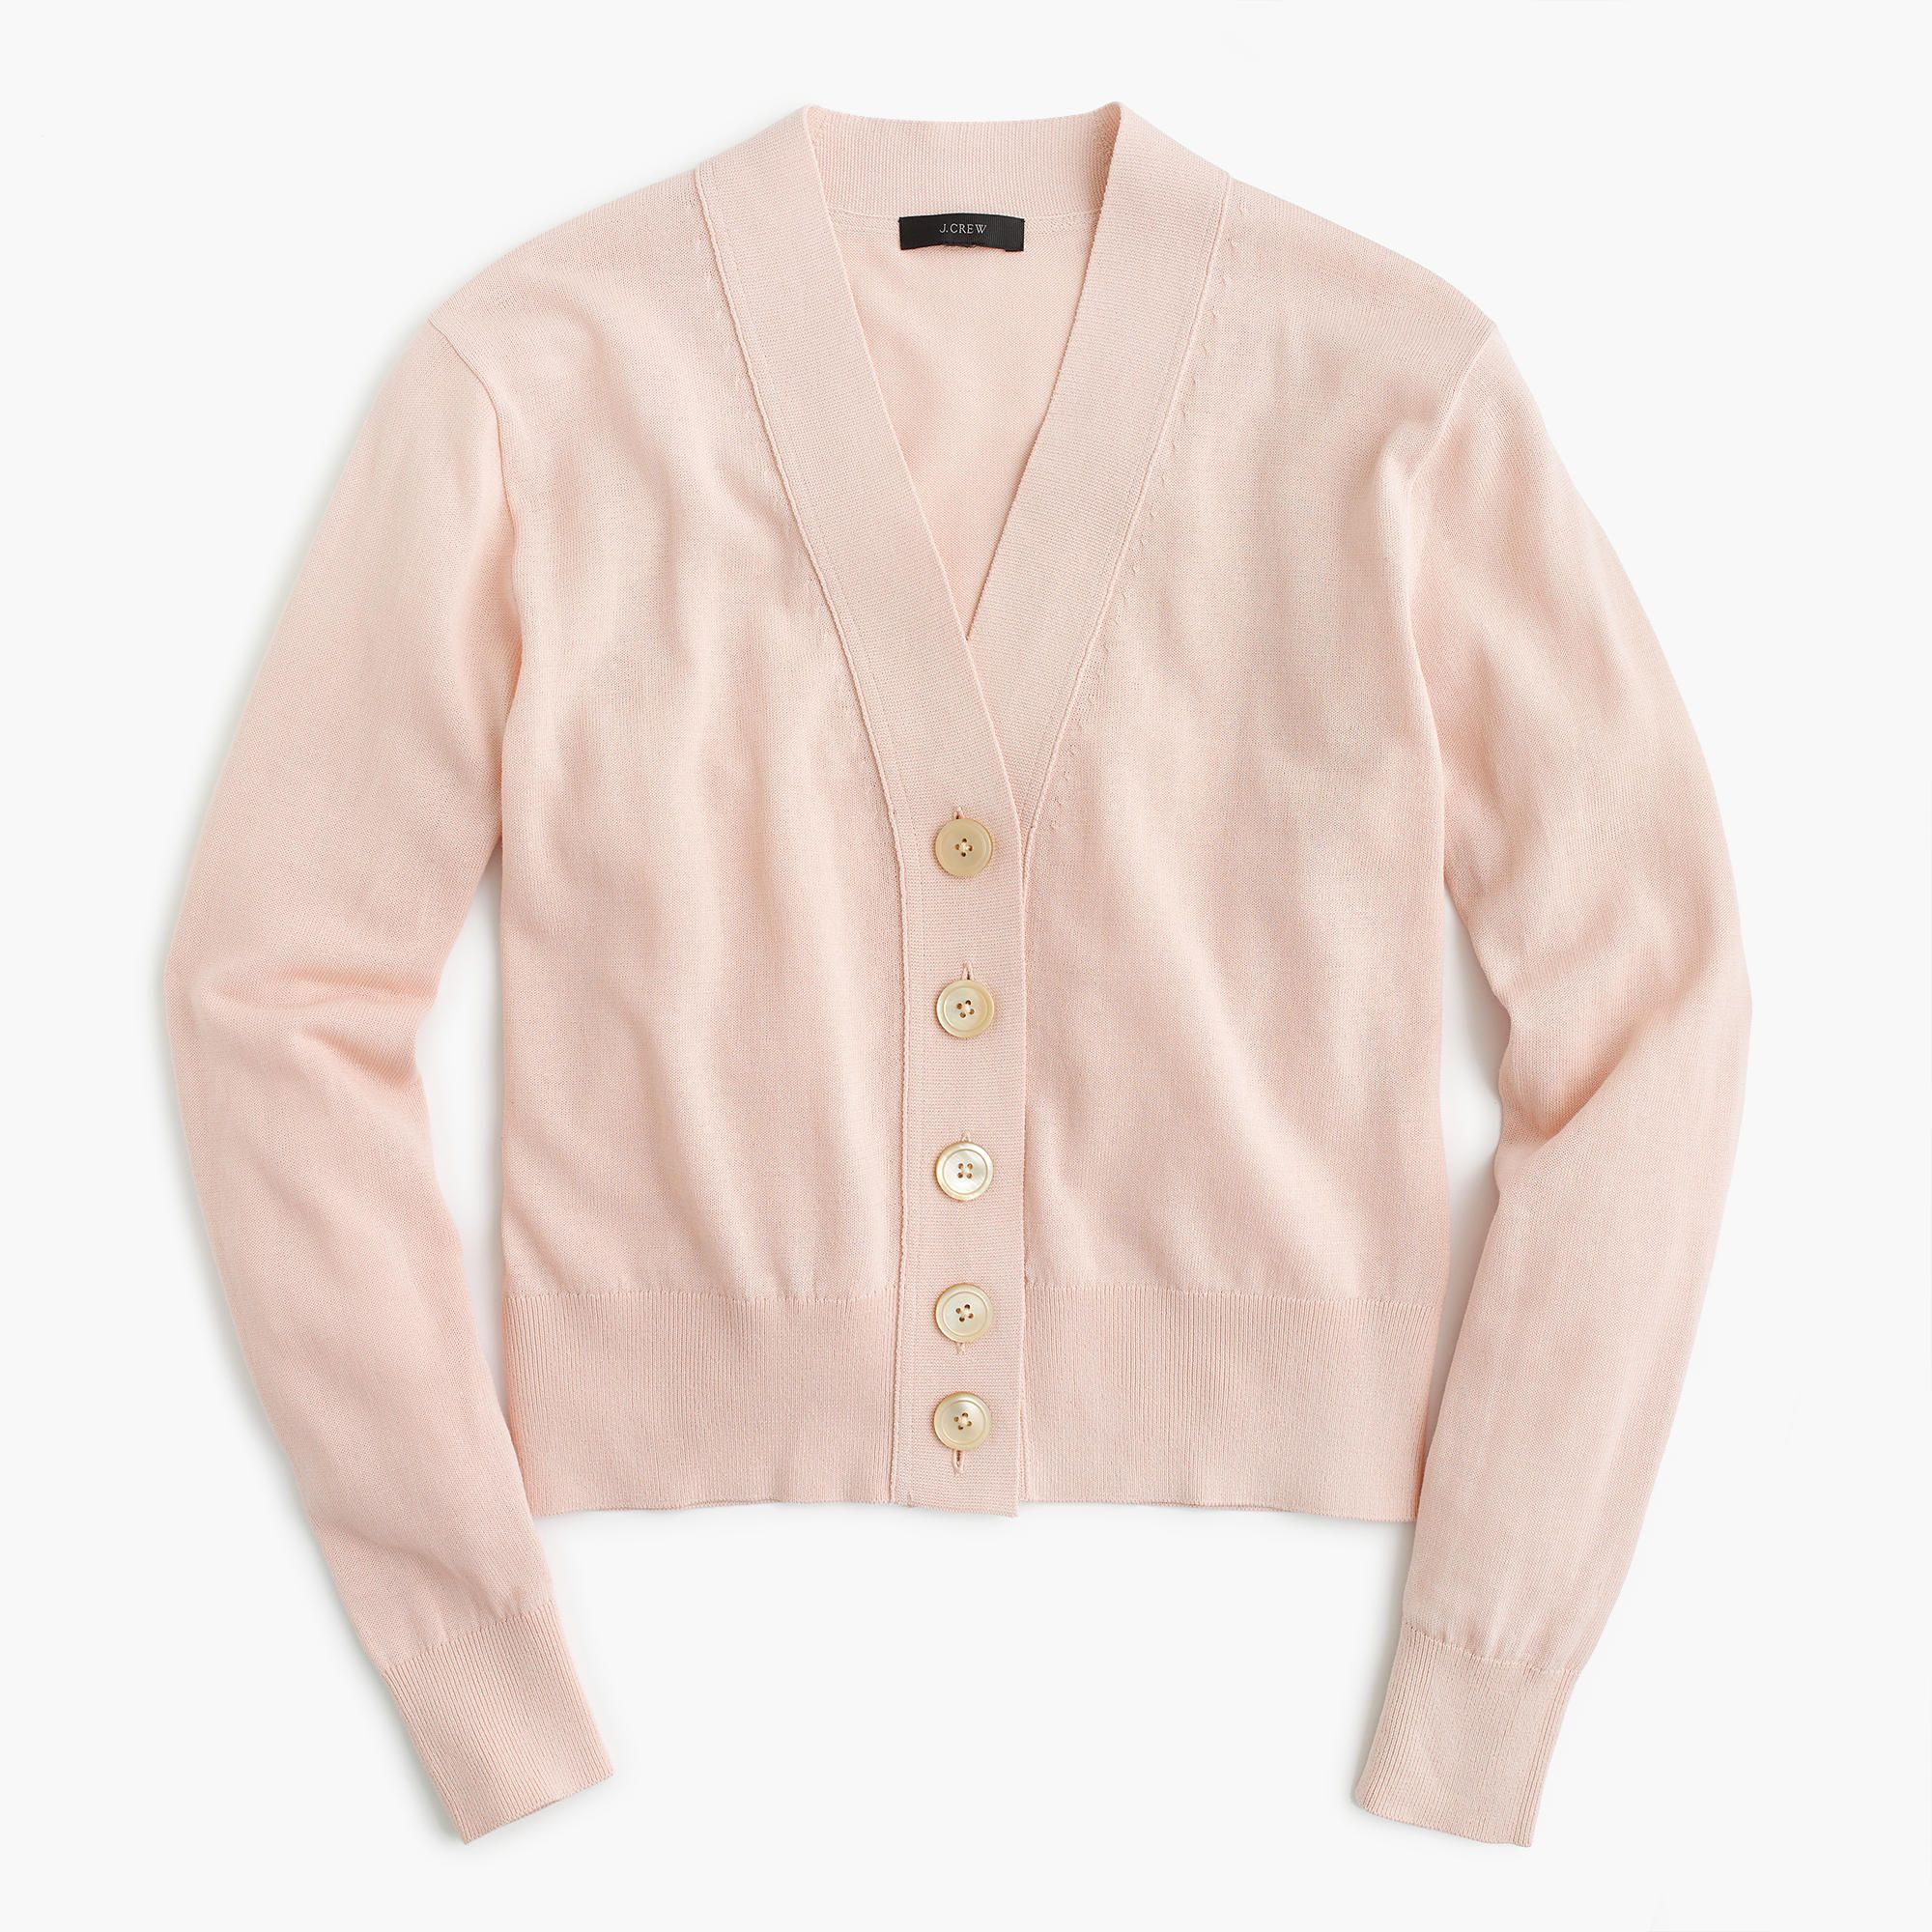 01dc306107b Cropped lightweight cardigan sweater in shell pink